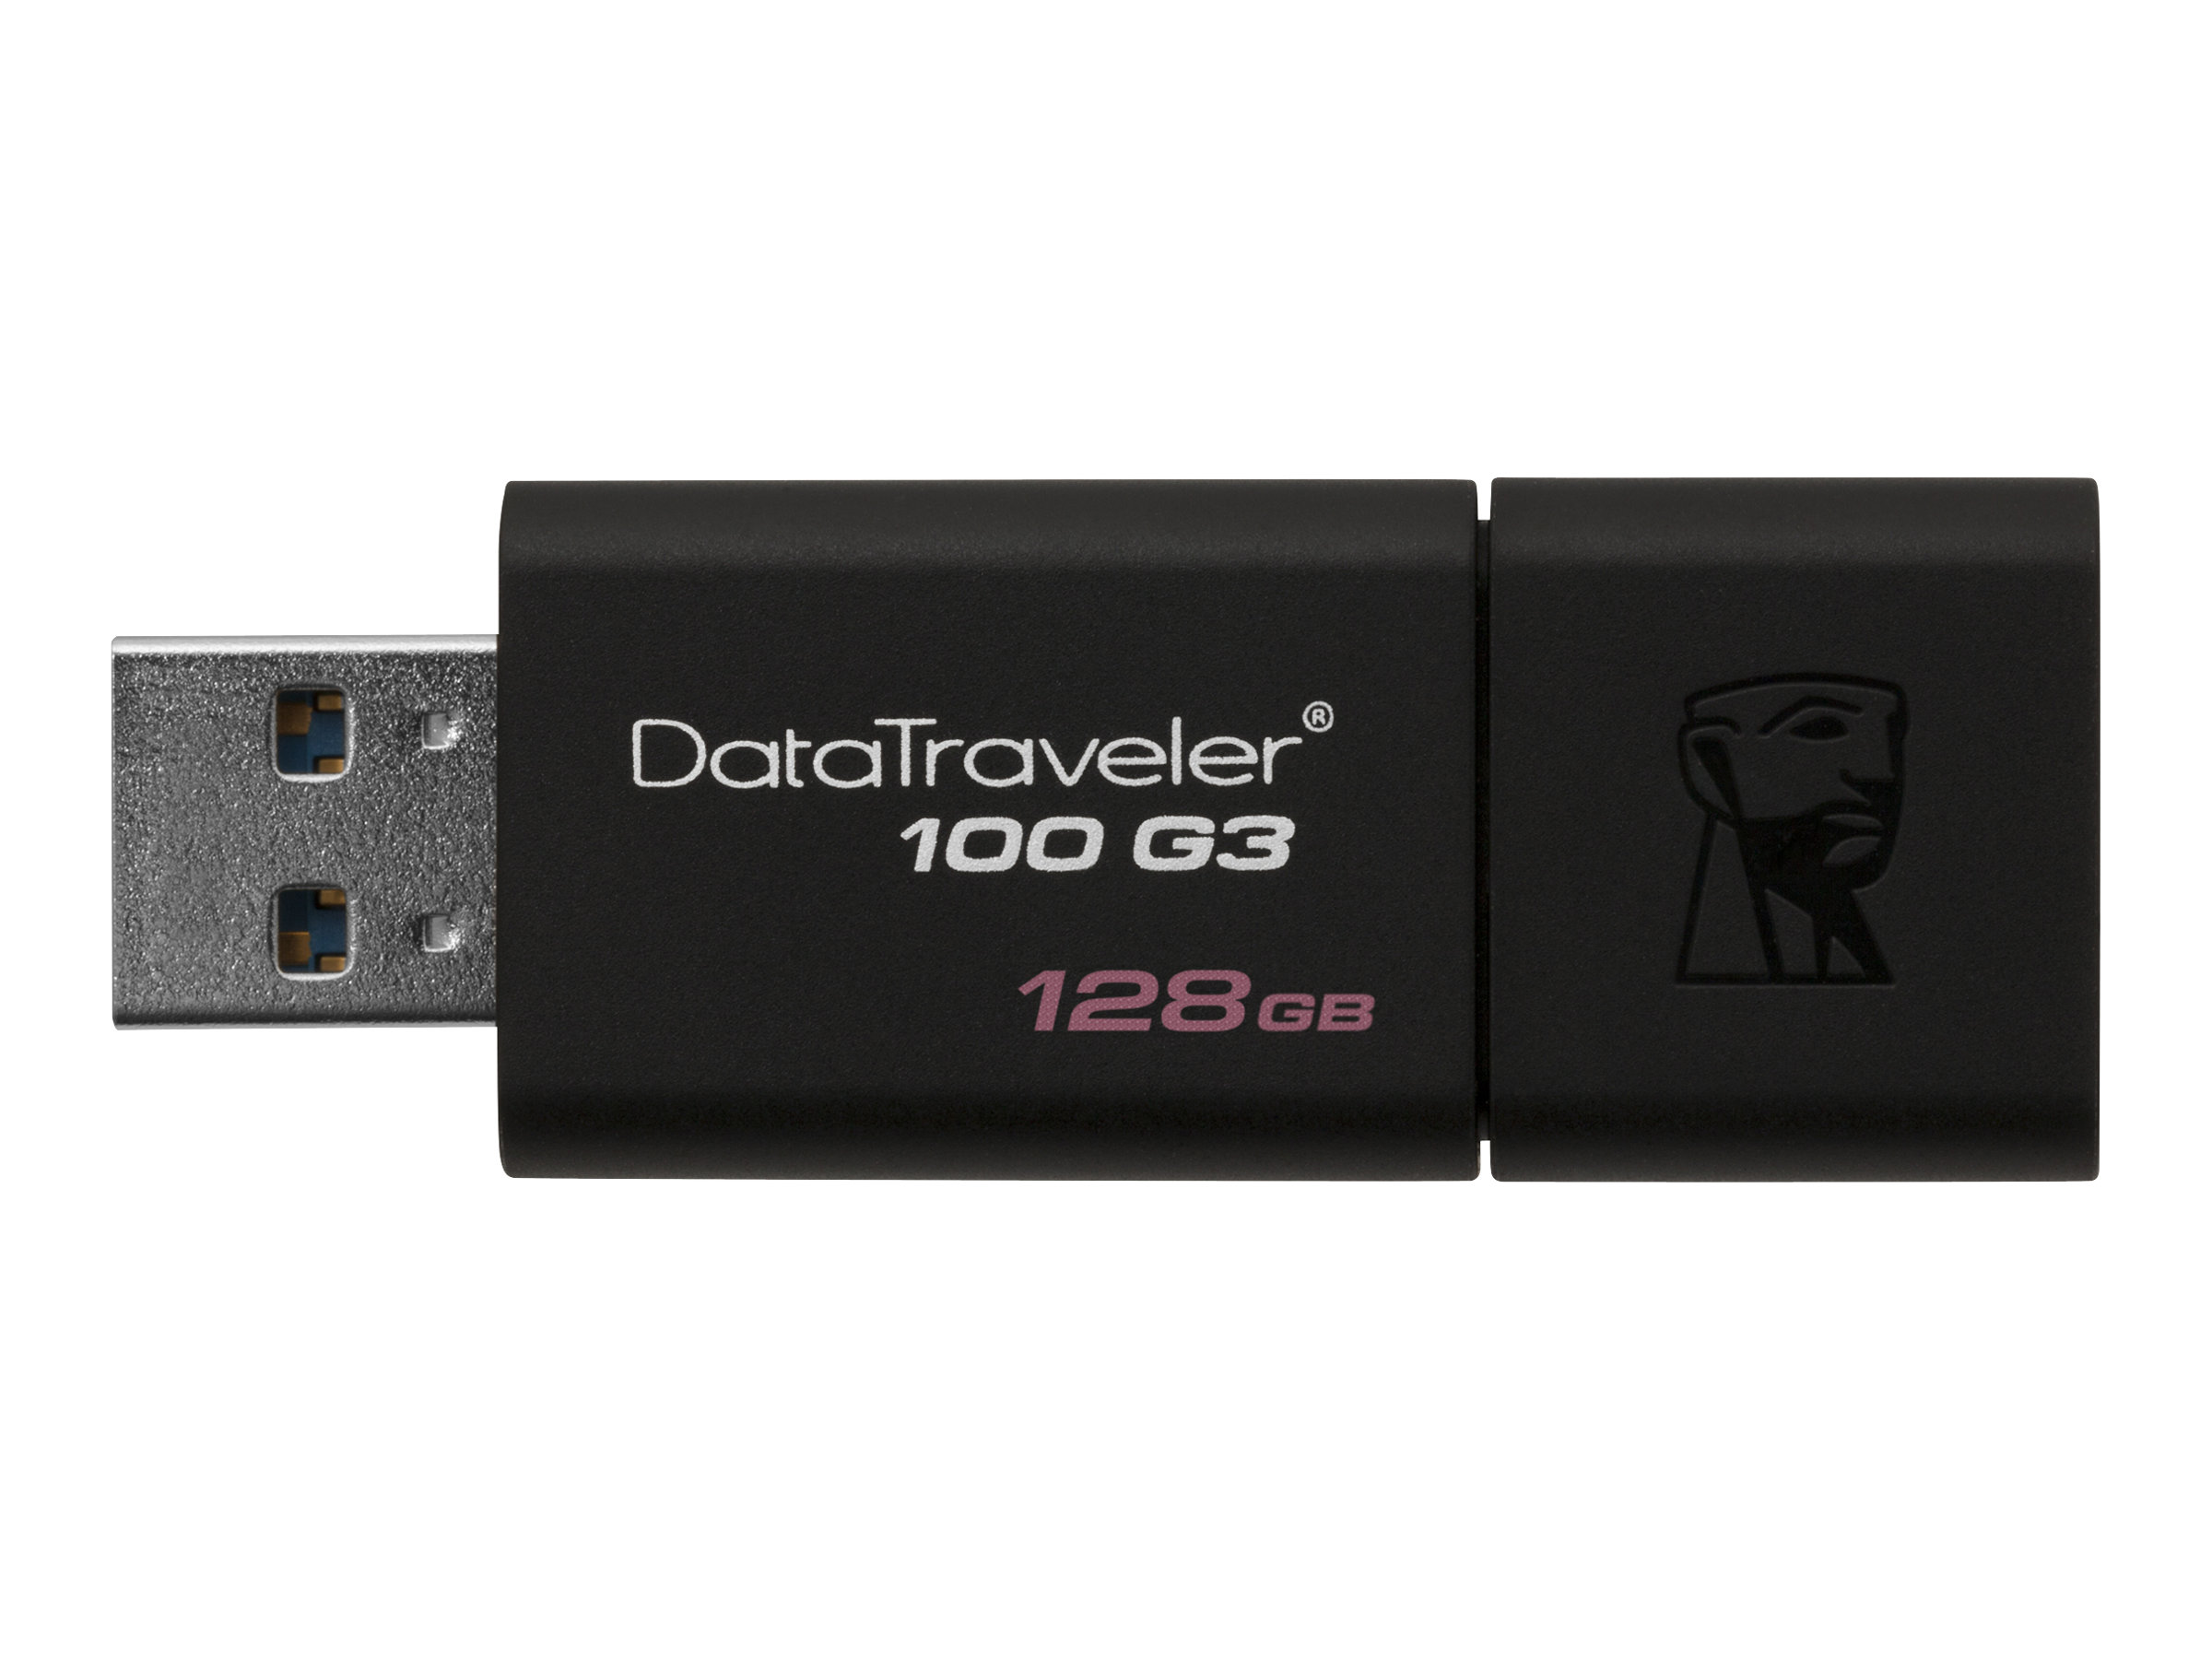 Kingston DataTraveler 100 G3 - USB-Flash-Laufwerk - 128 GB - USB 3.0 - Schwarz